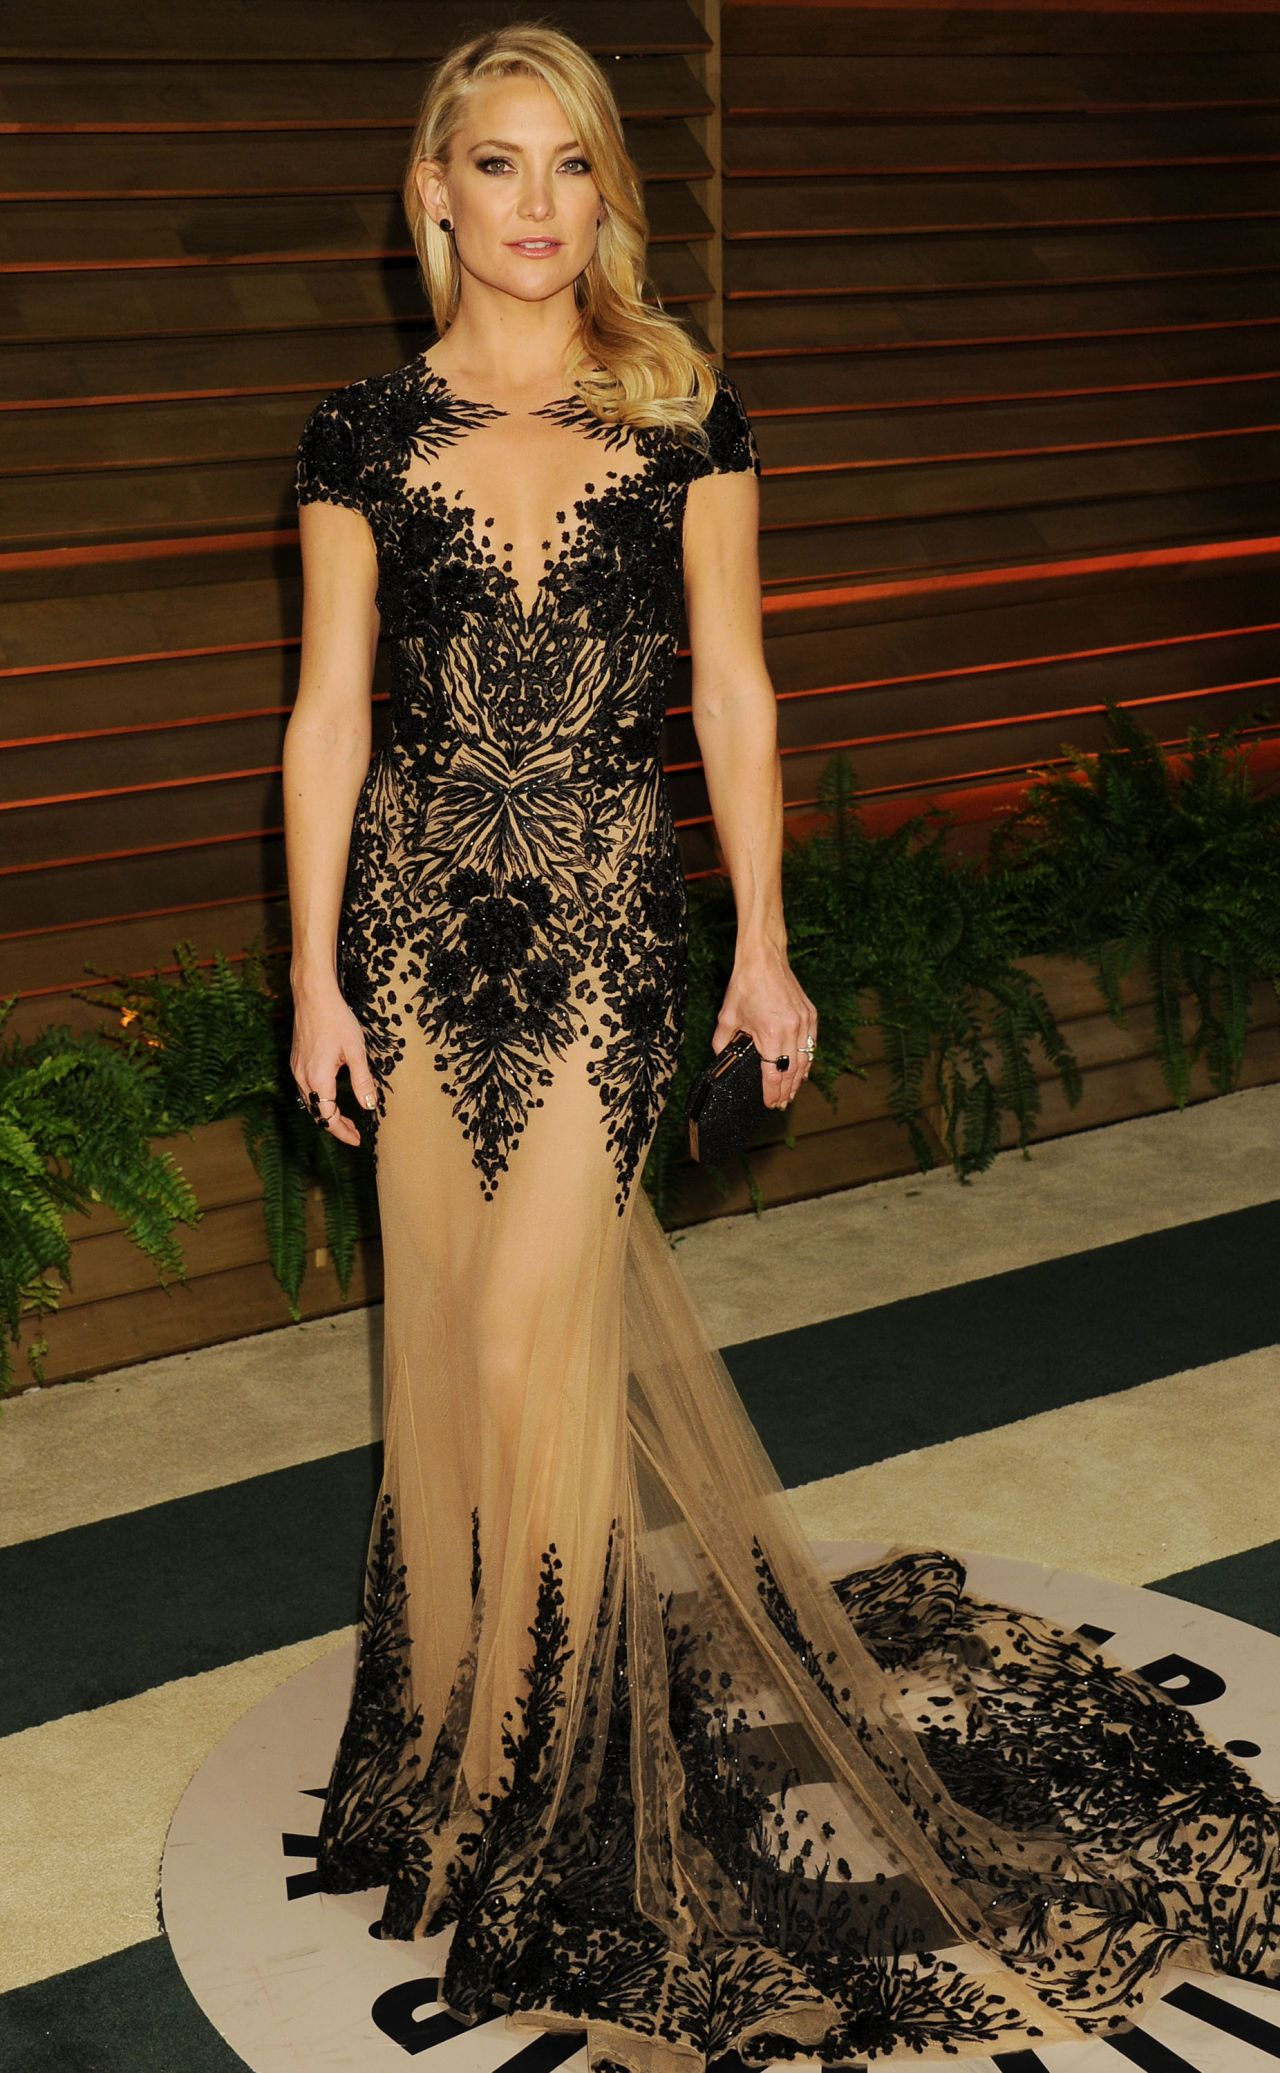 kate-hudson-in-zuhair-murad-spring-couture-gown-2014-vanity-fair-oscar-party-in-hollywood_4